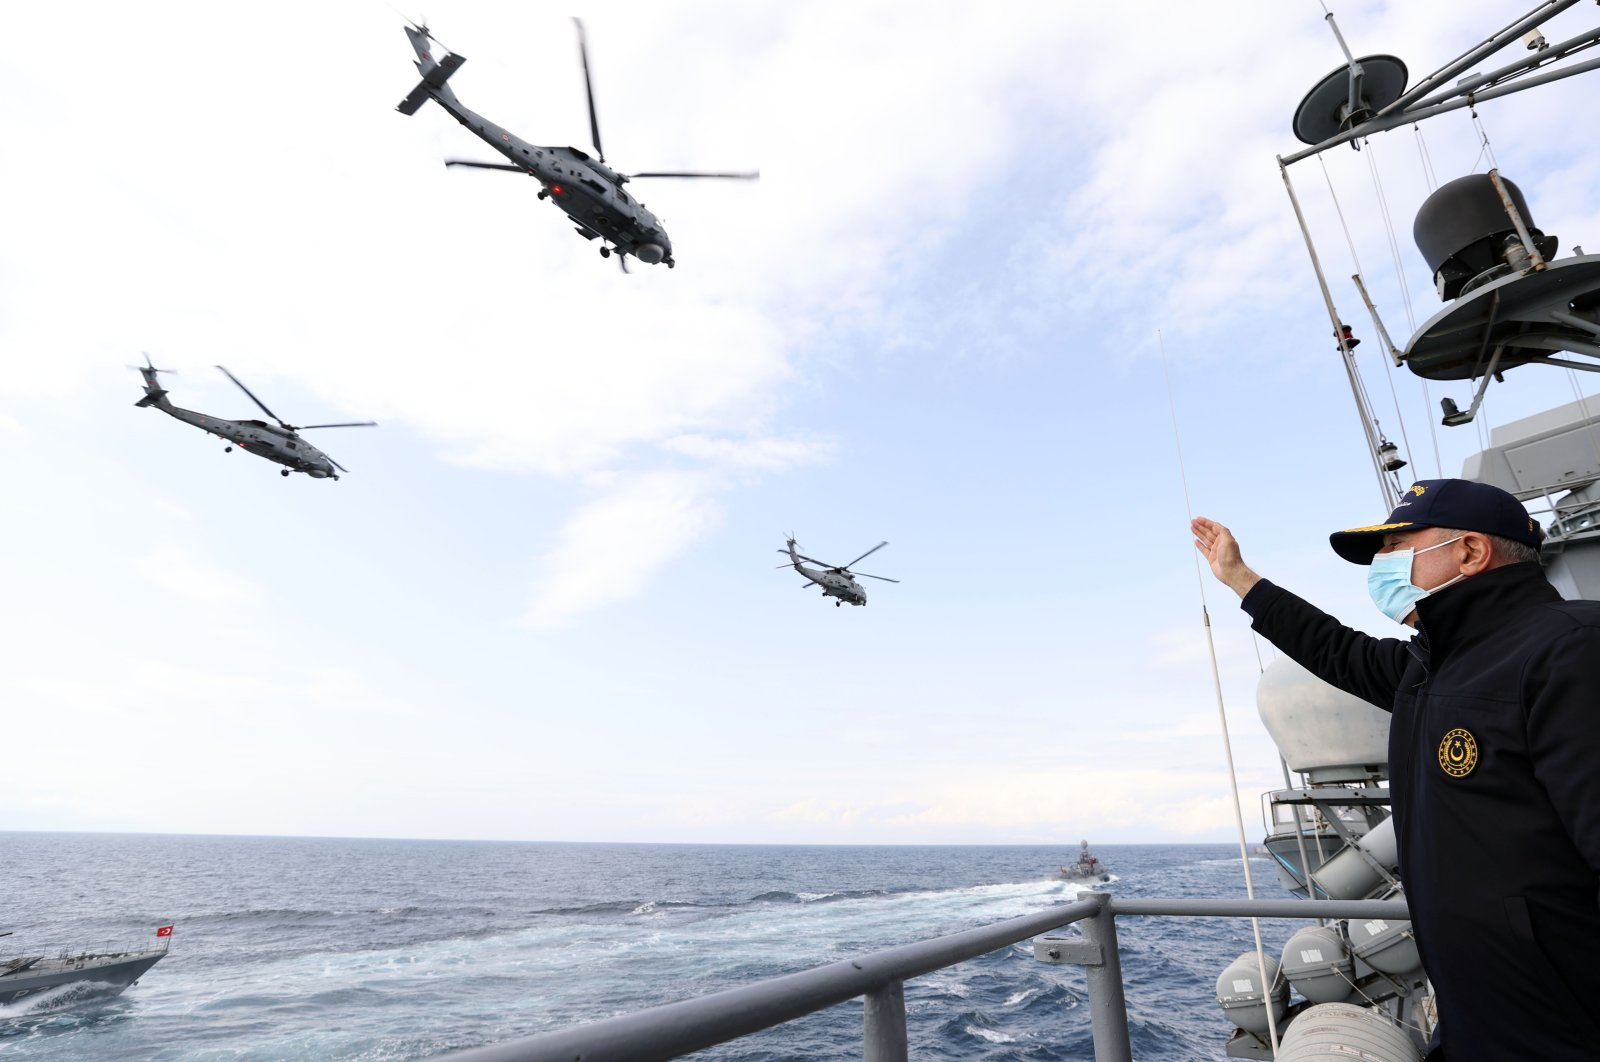 Defense Minister Hulusi Akar attends the Blue Homeland 2021 tactical exercise on the Oruç Reis off the Aegean Sea on Saturday, March 6, 2021 (AA Photo)